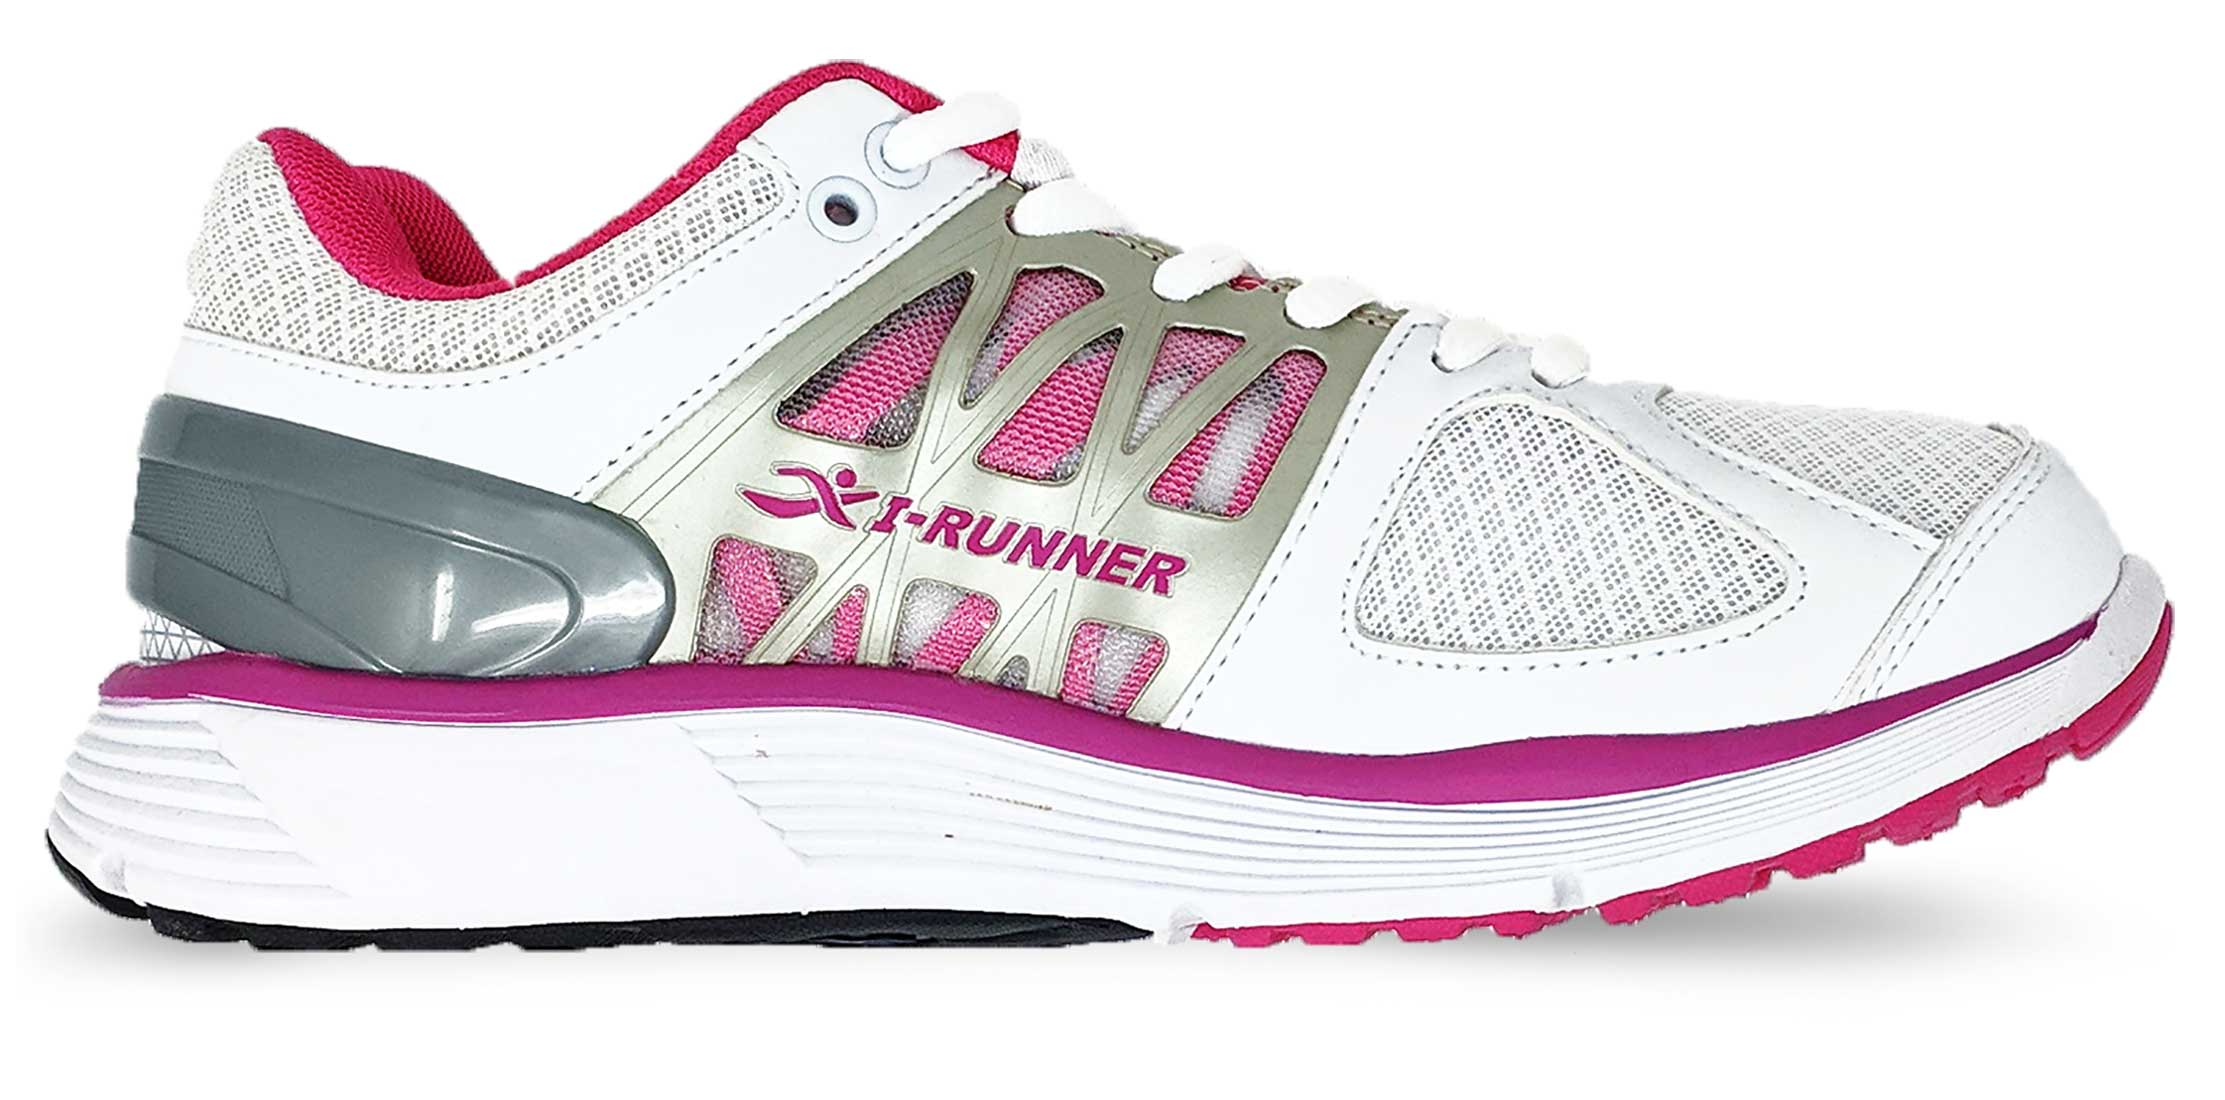 I-RUNNER Miya - Athletic Walking Shoe